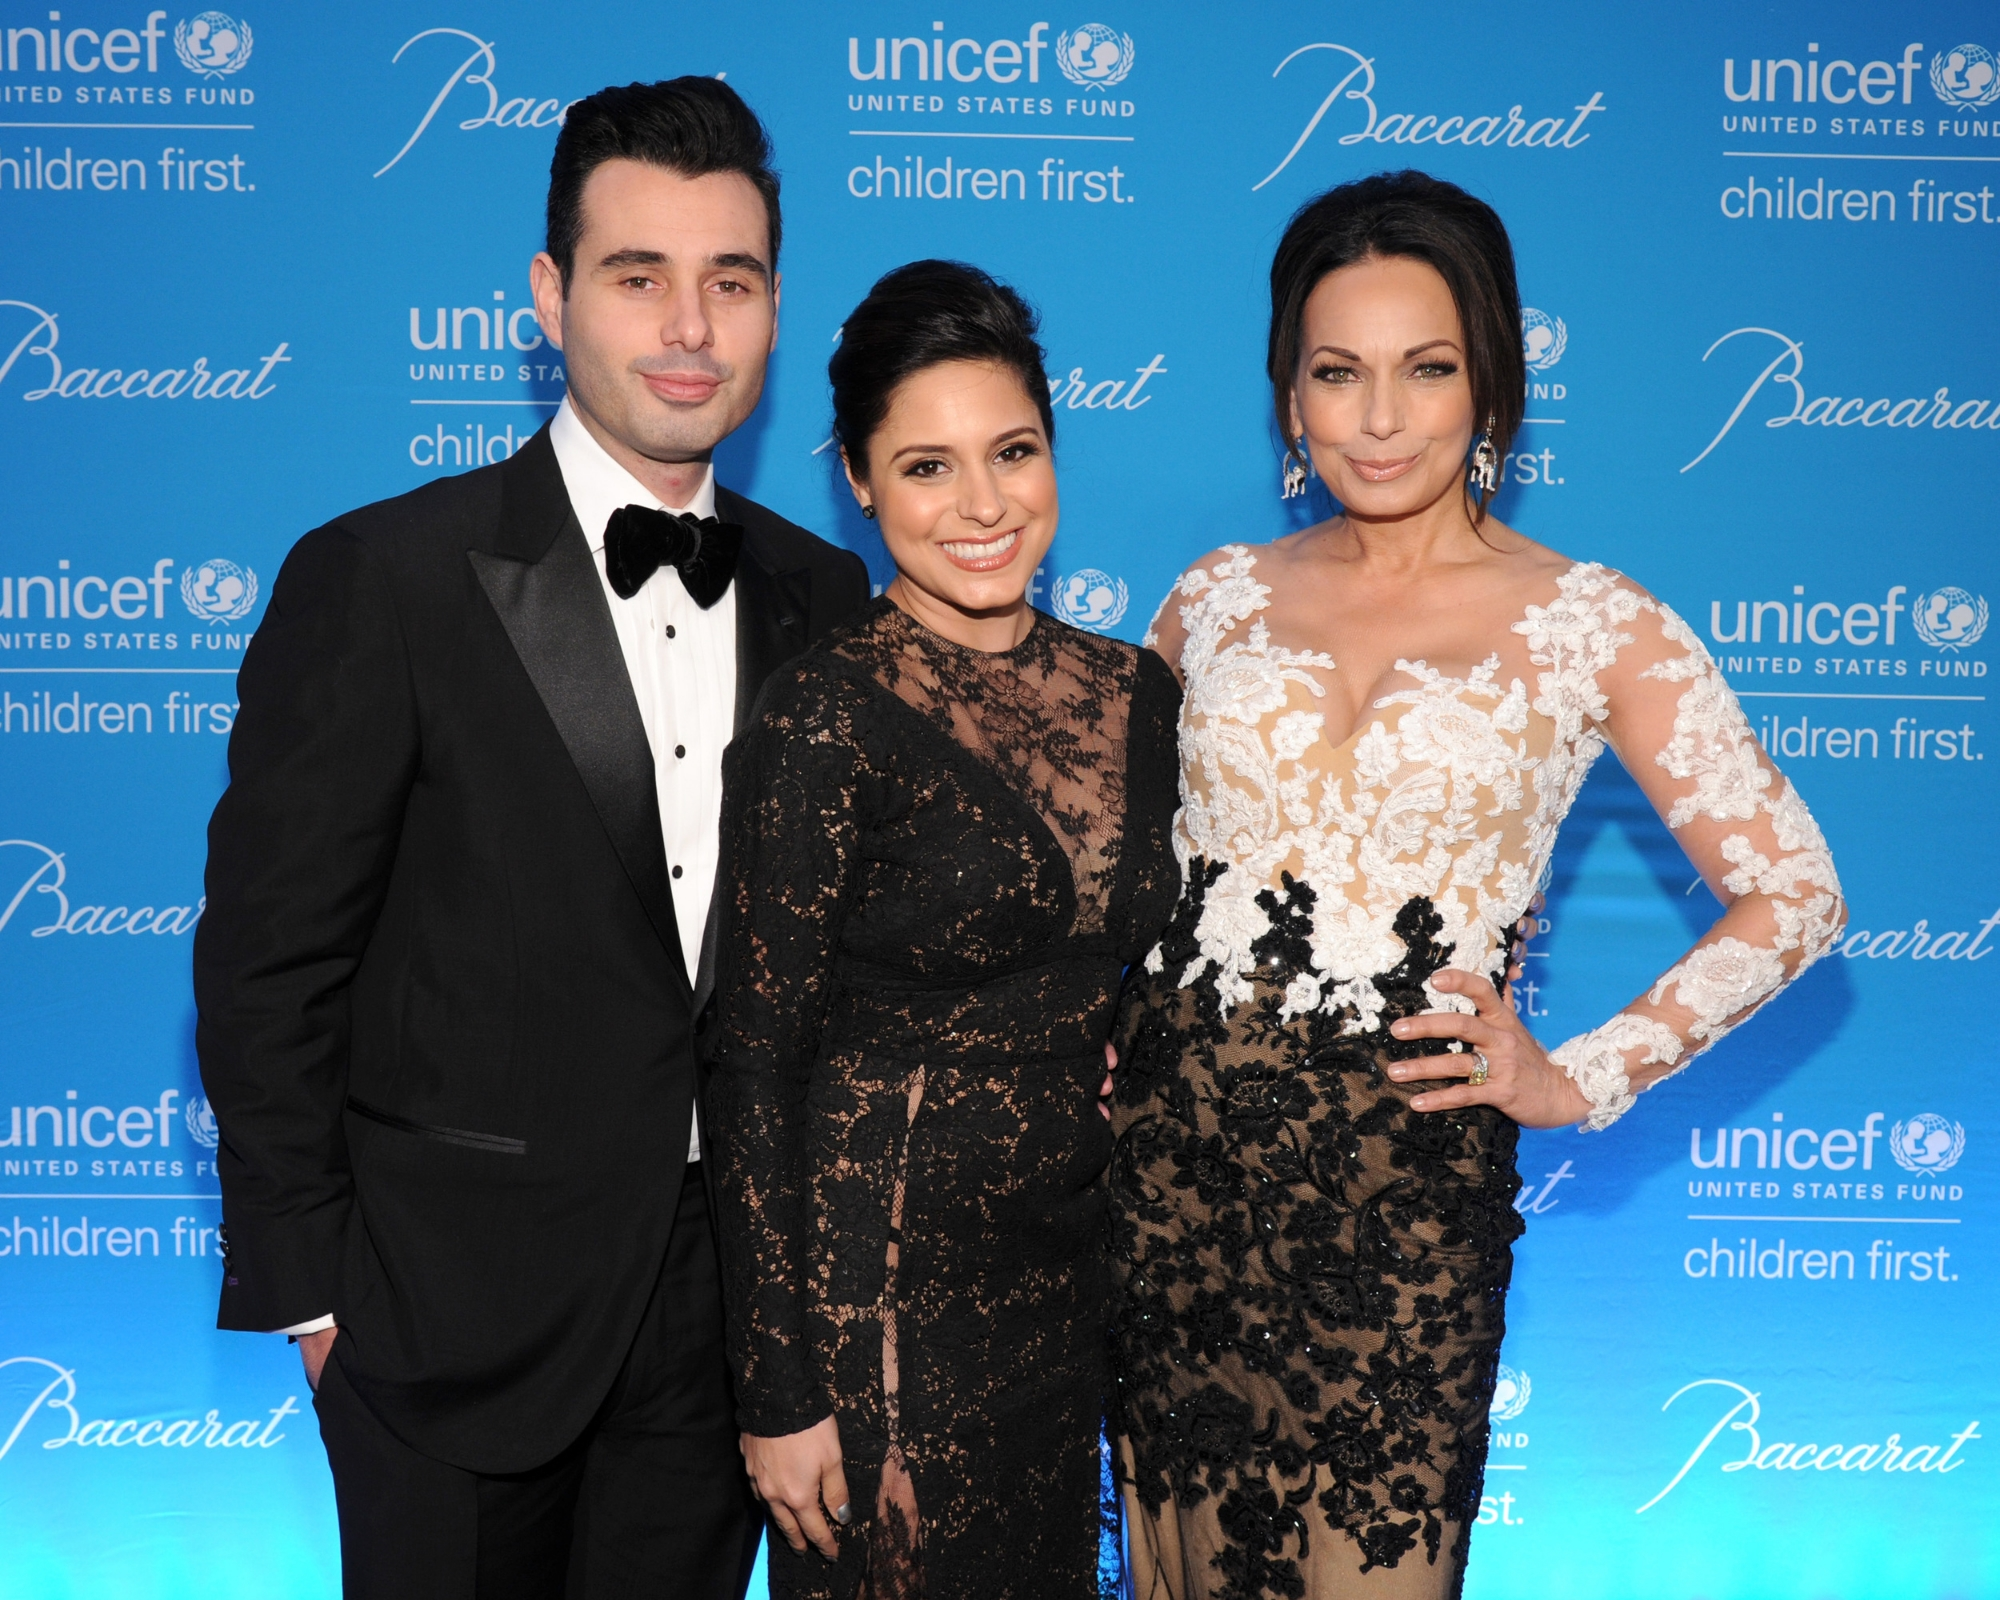 Michael and Aphrodite Camello and Moll Anderson ©2014 Bryan Bedder/Getty Images for UNICEF